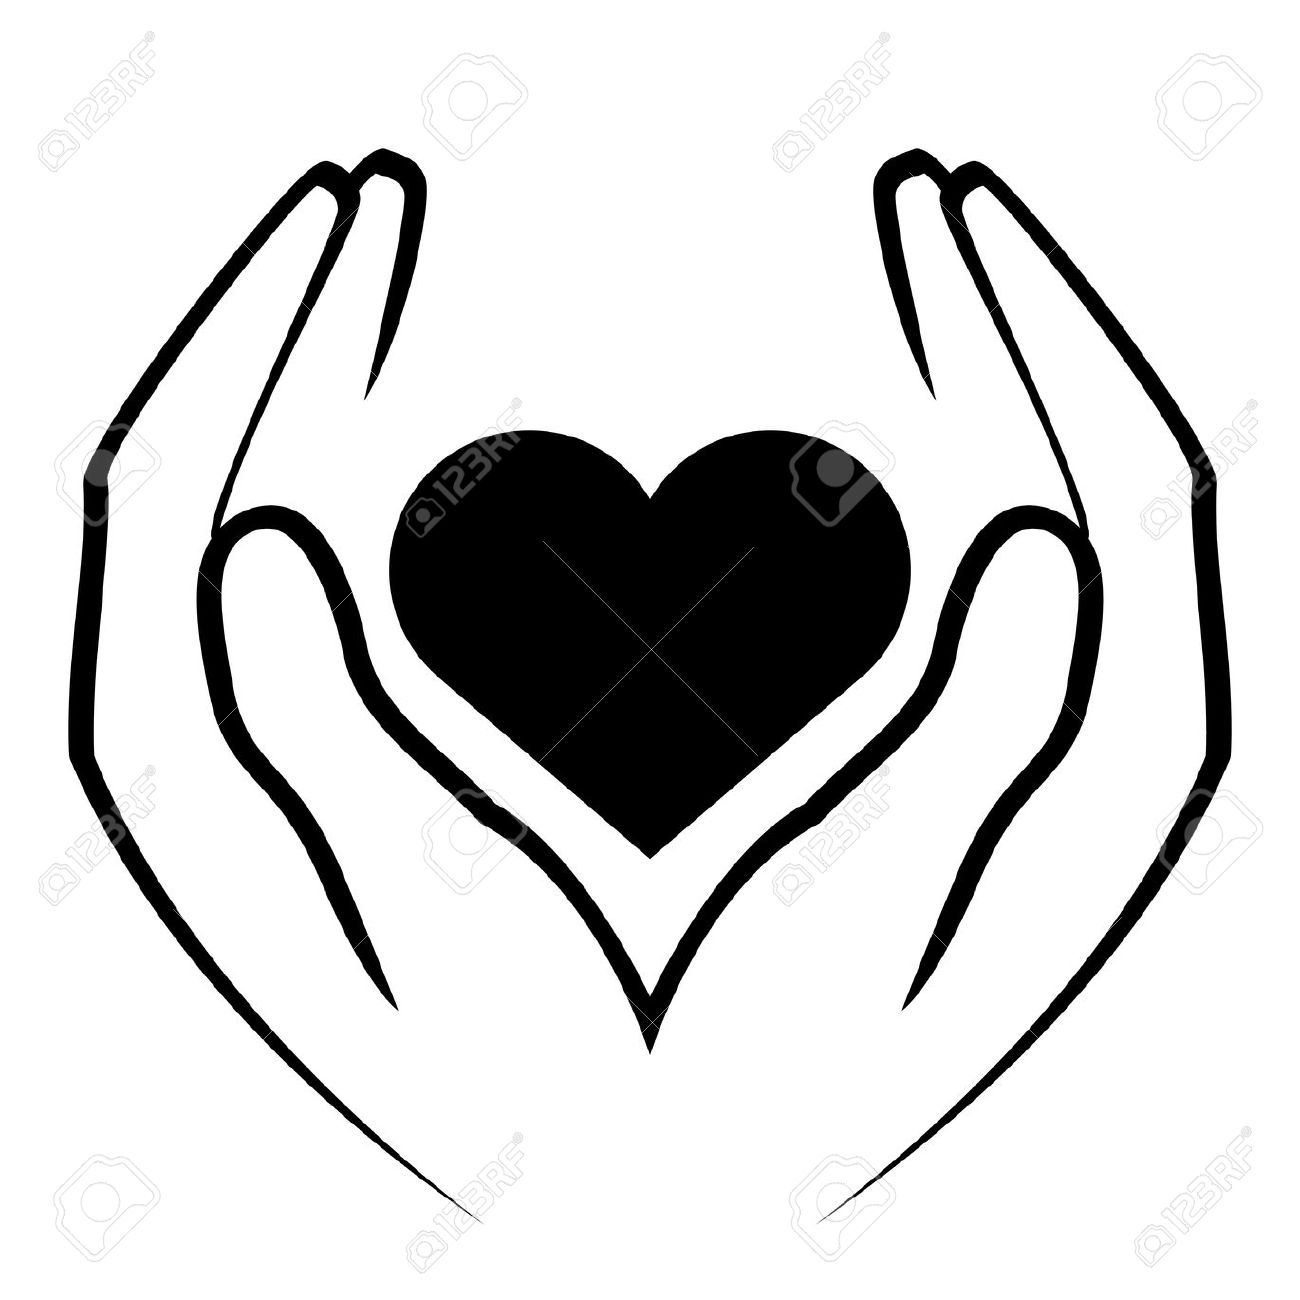 Hands Heart Clipart